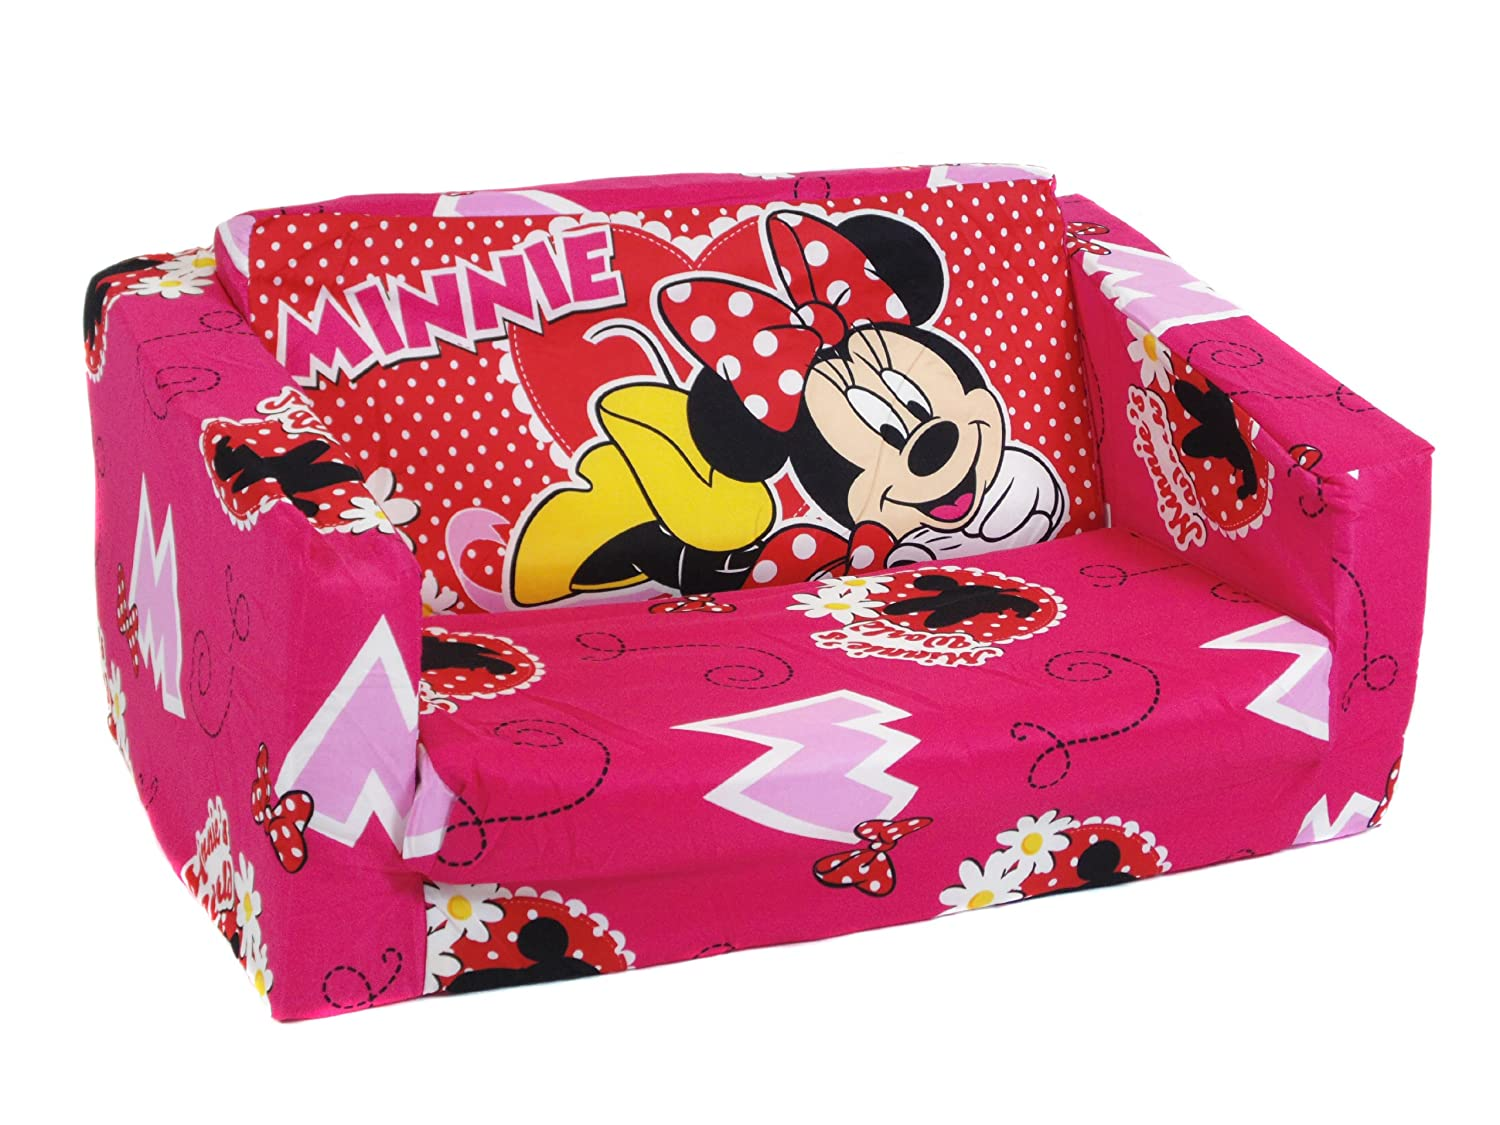 Official Minnie Mouse fold out sofa bed Amazoncouk Kitchen Home